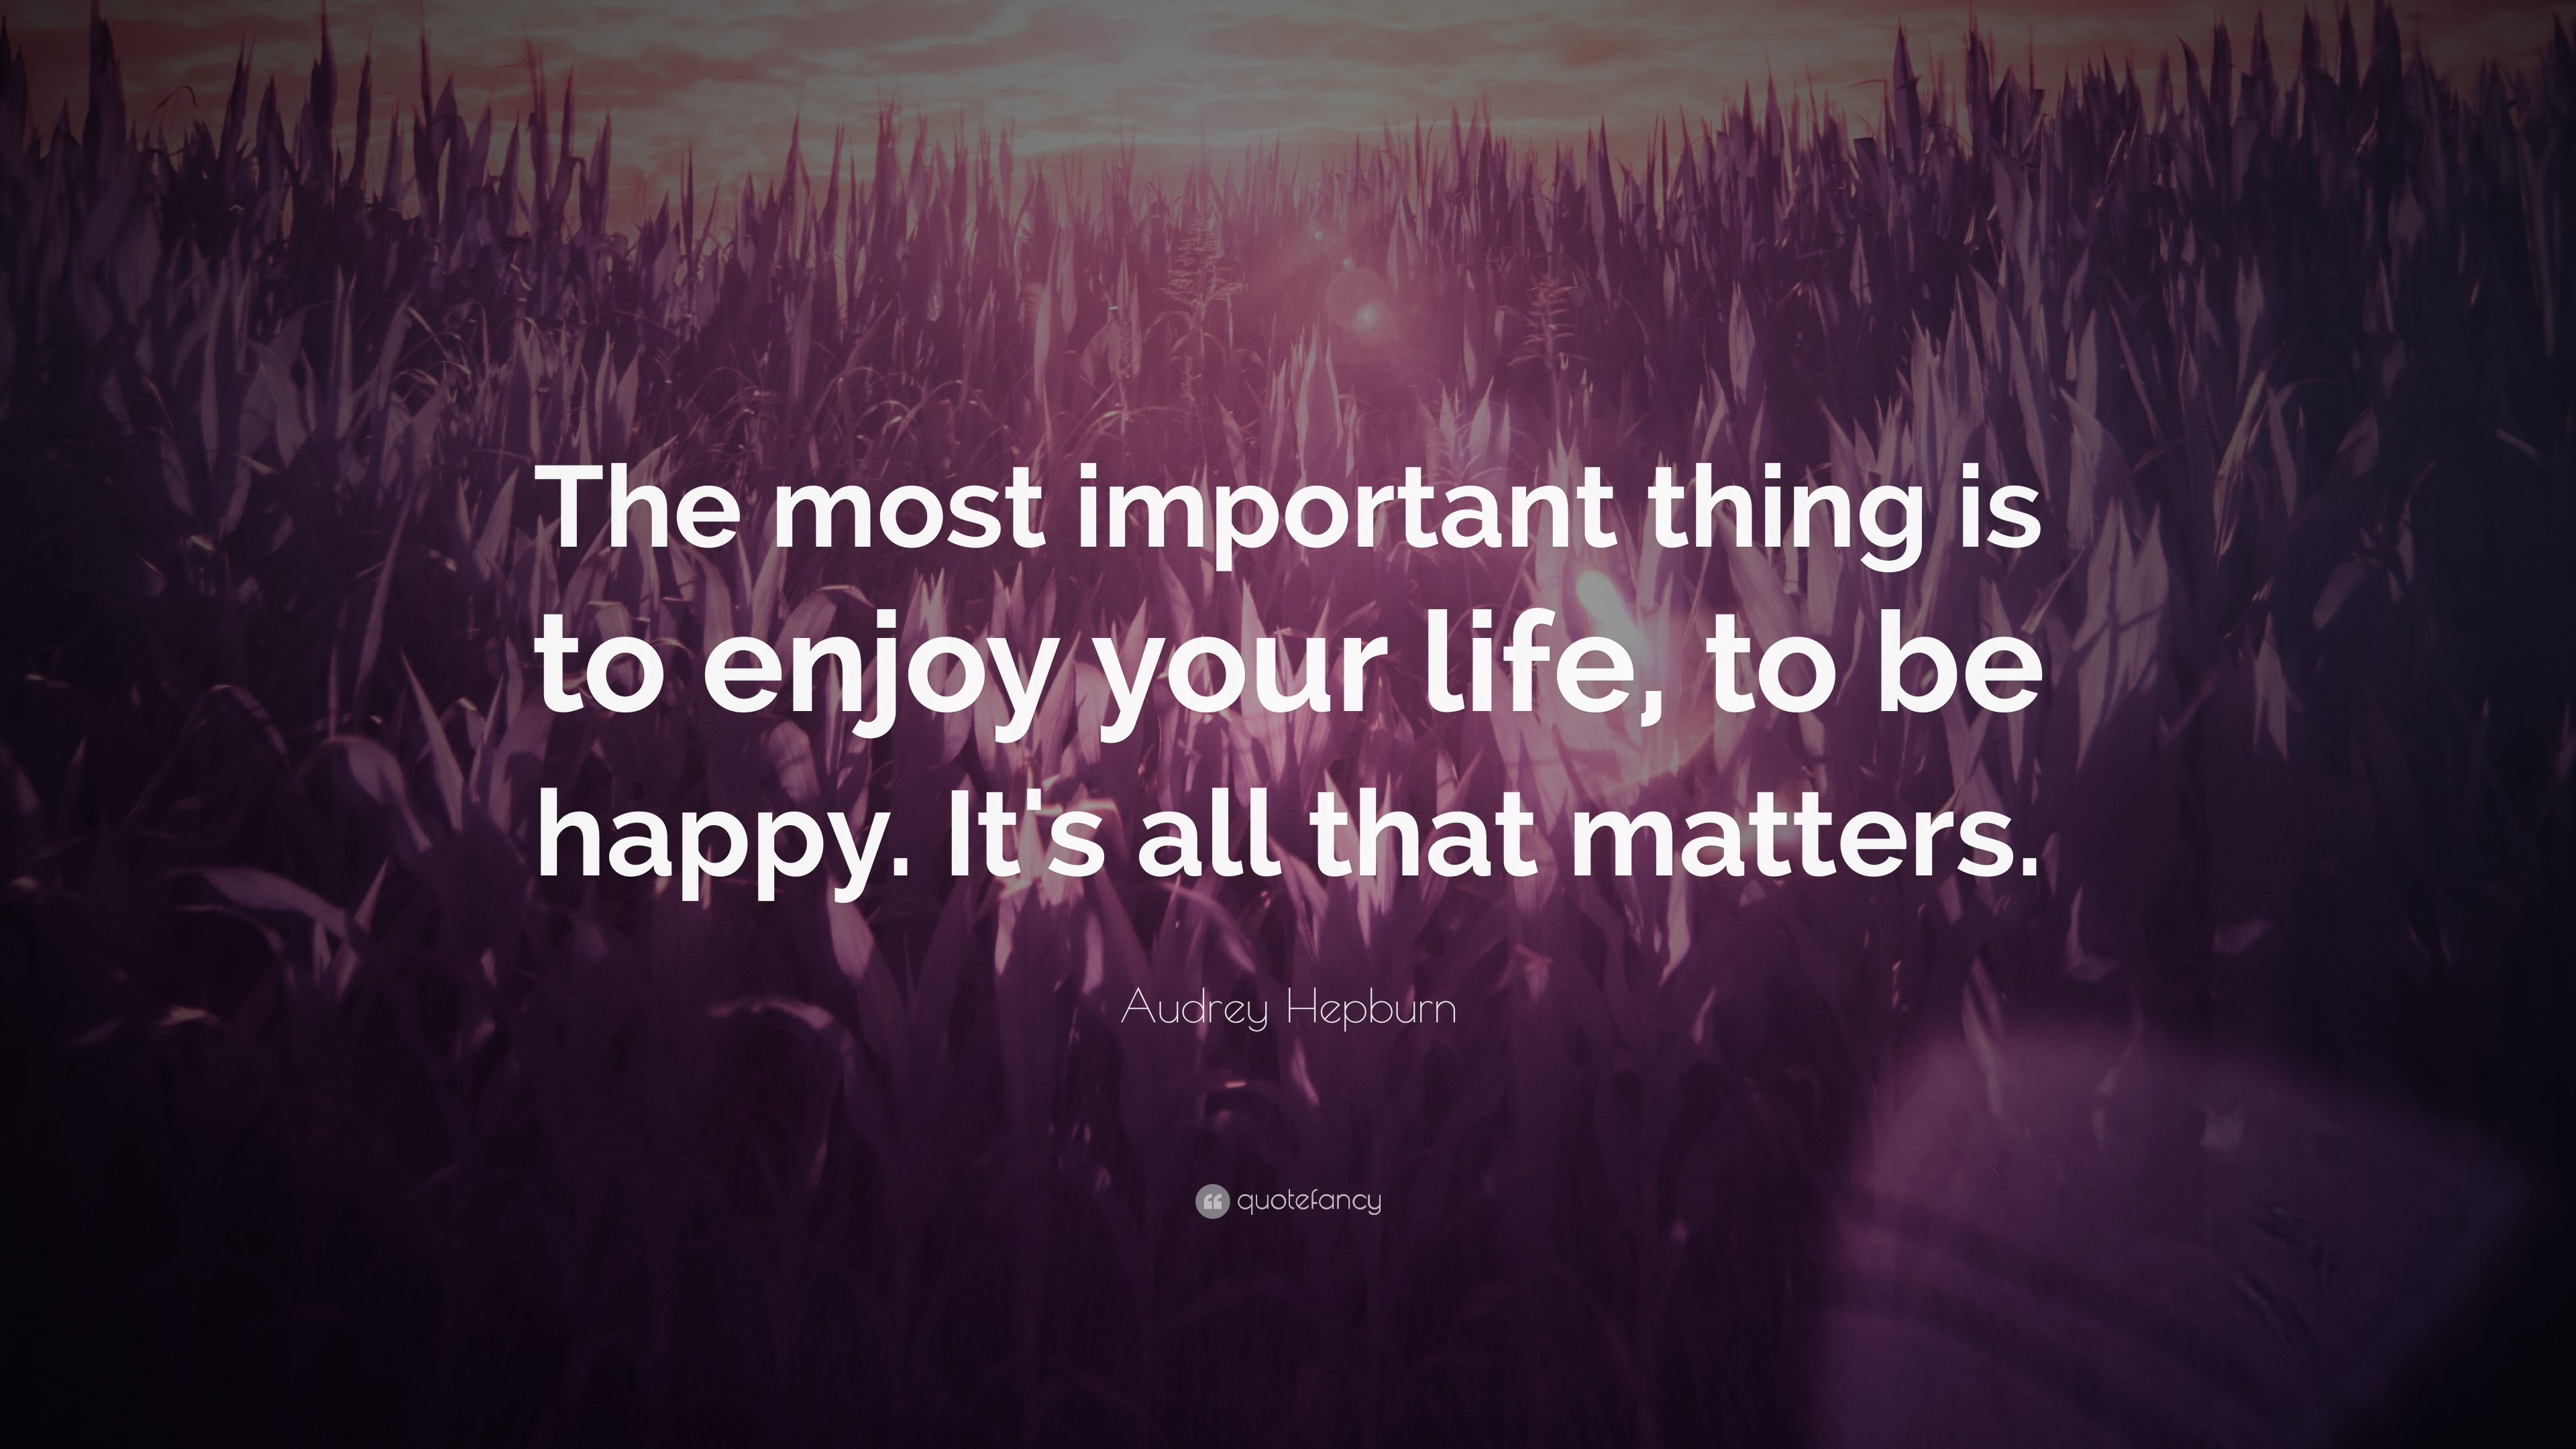 Wallpaper download on life - Audrey Hepburn Quote The Most Important Thing Is To Enjoy Your Life To